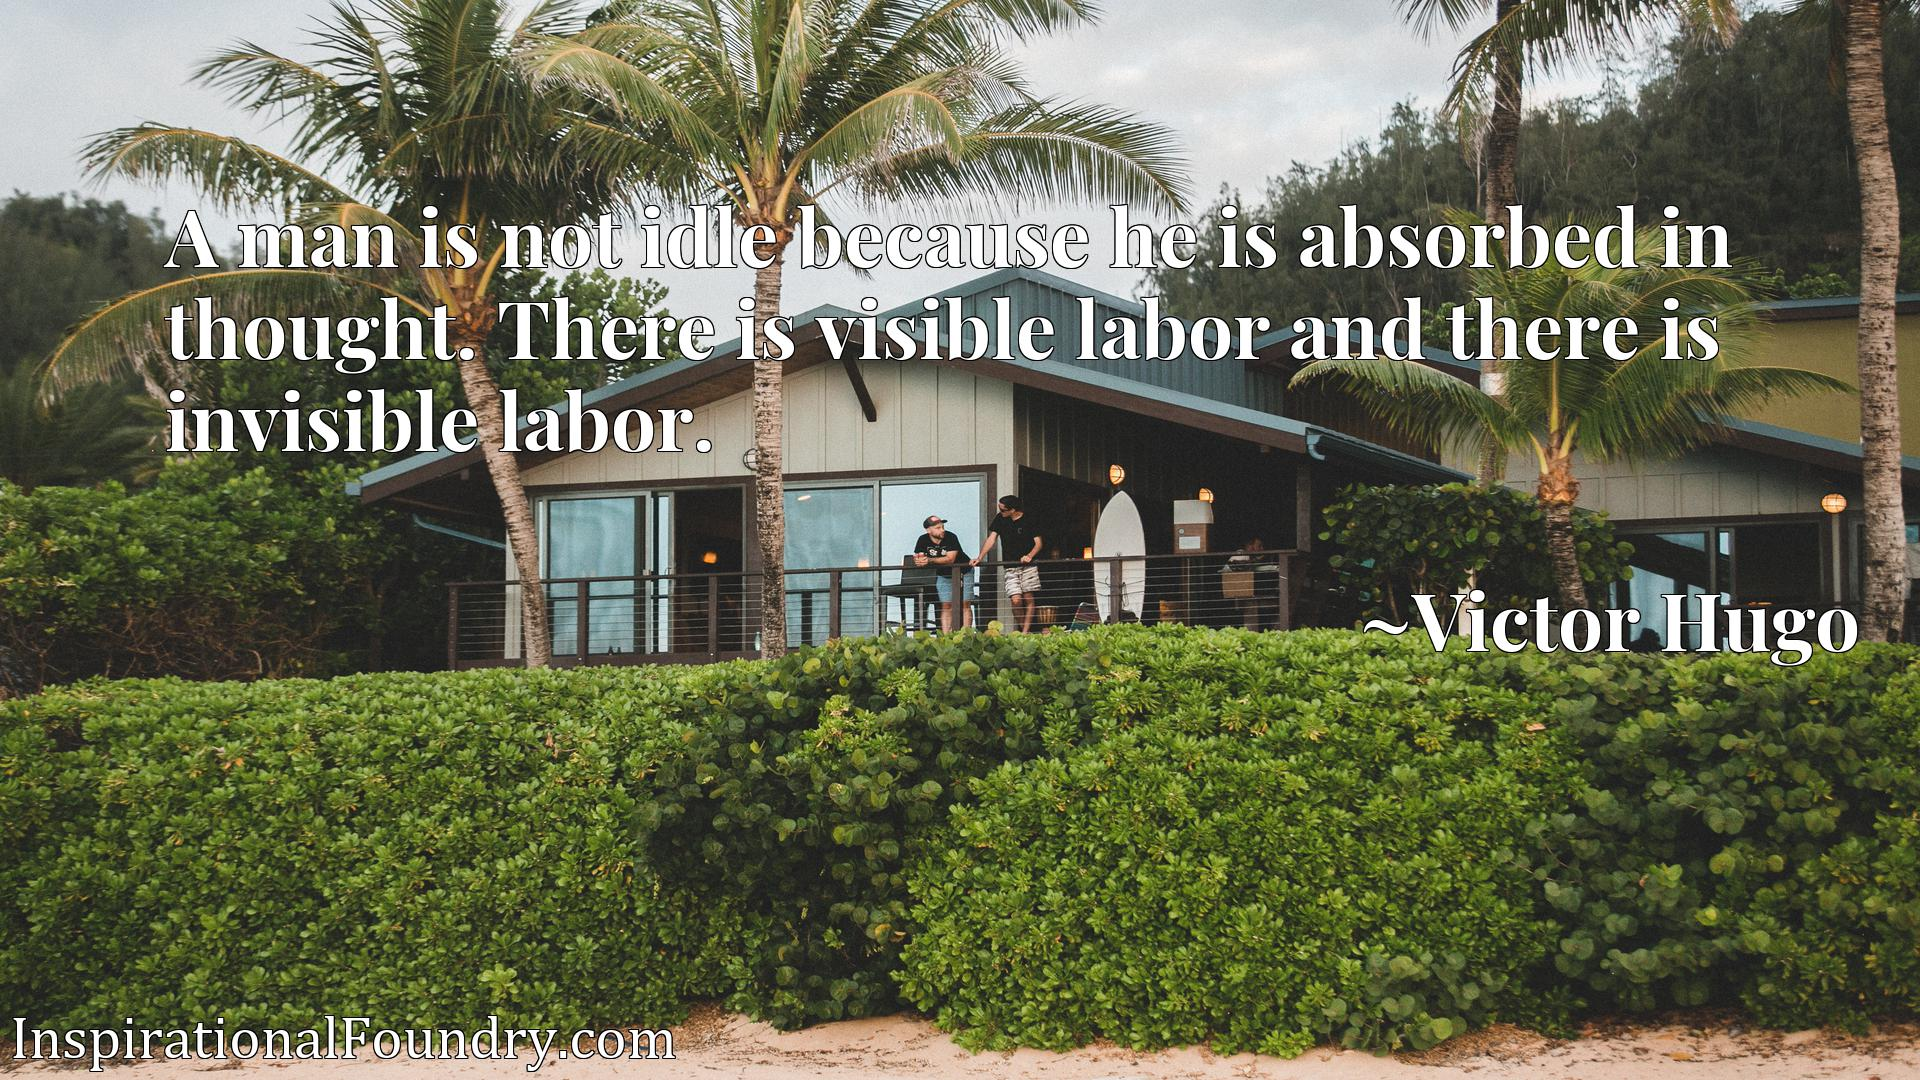 Quote Picture :A man is not idle because he is absorbed in thought. There is visible labor and there is invisible labor.